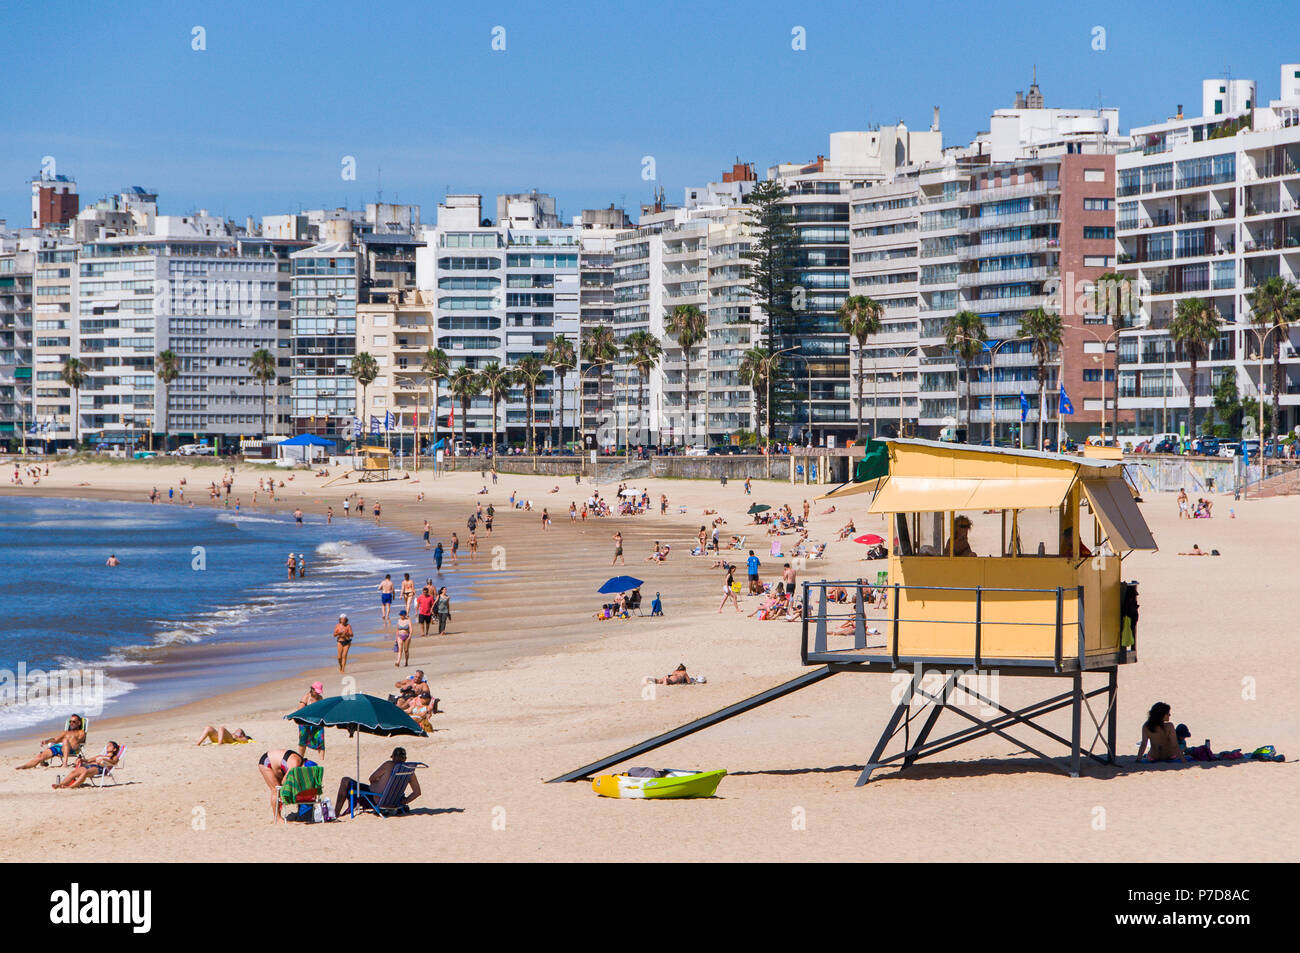 Swimmers at the city beach, lifeguard tower and skyscrapers in Montevideo, Uruguay - Stock Image